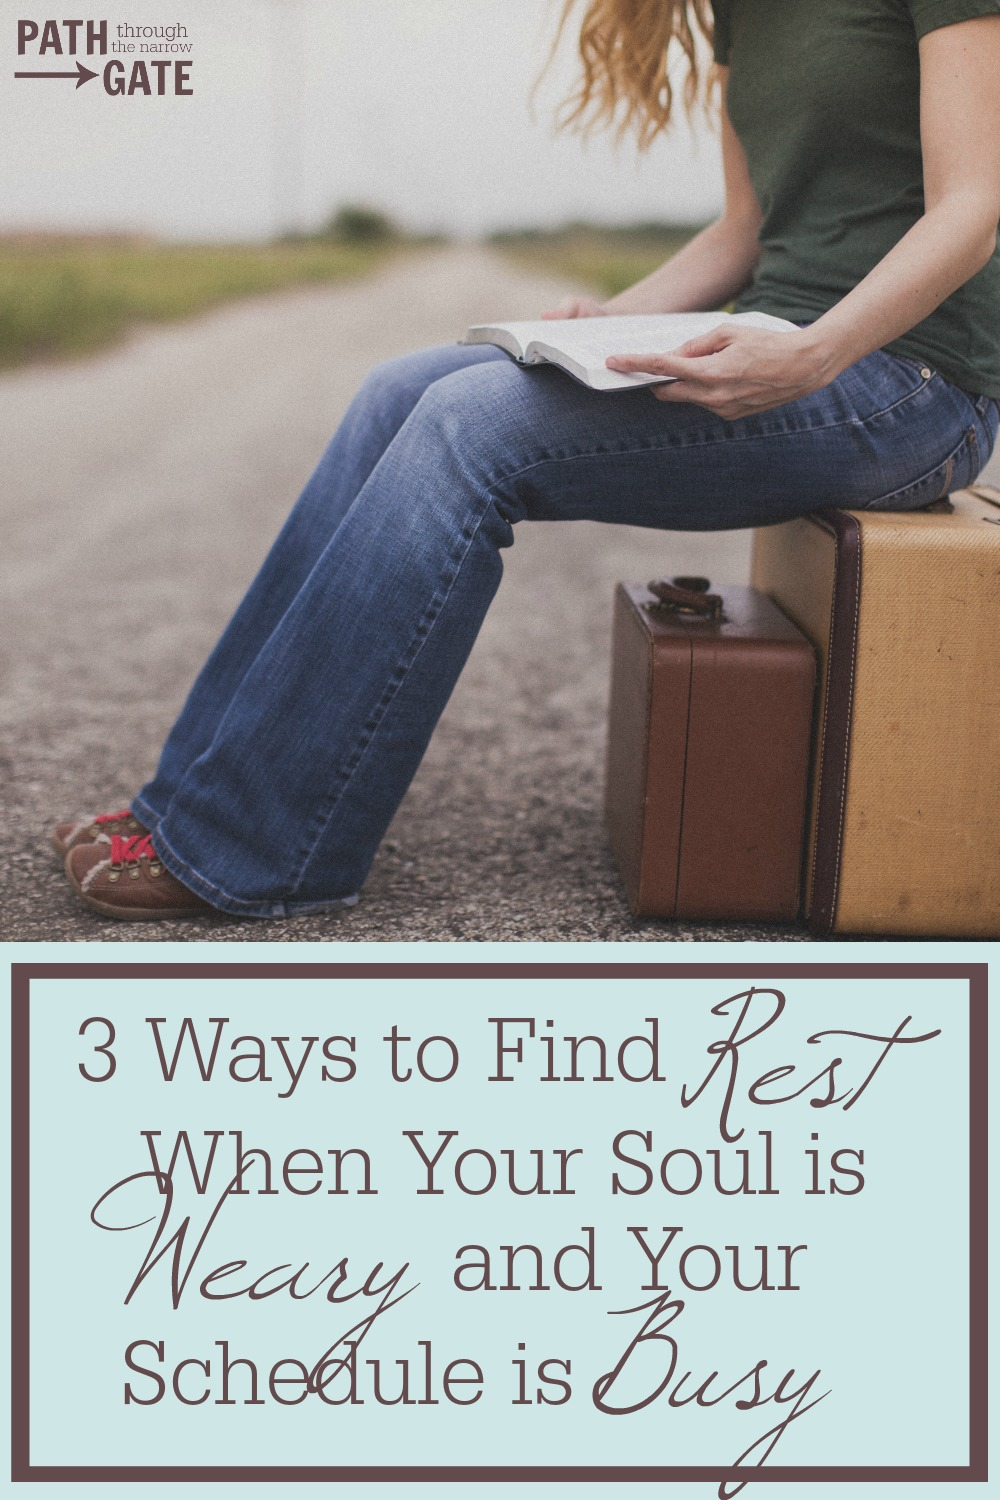 Are you weary? Do you know that you need to slow down and simplify, yet don't know where to start? Here are 3 Ways to Find Rest When Your Soul is Weary.| Path Through the Narrow Gate